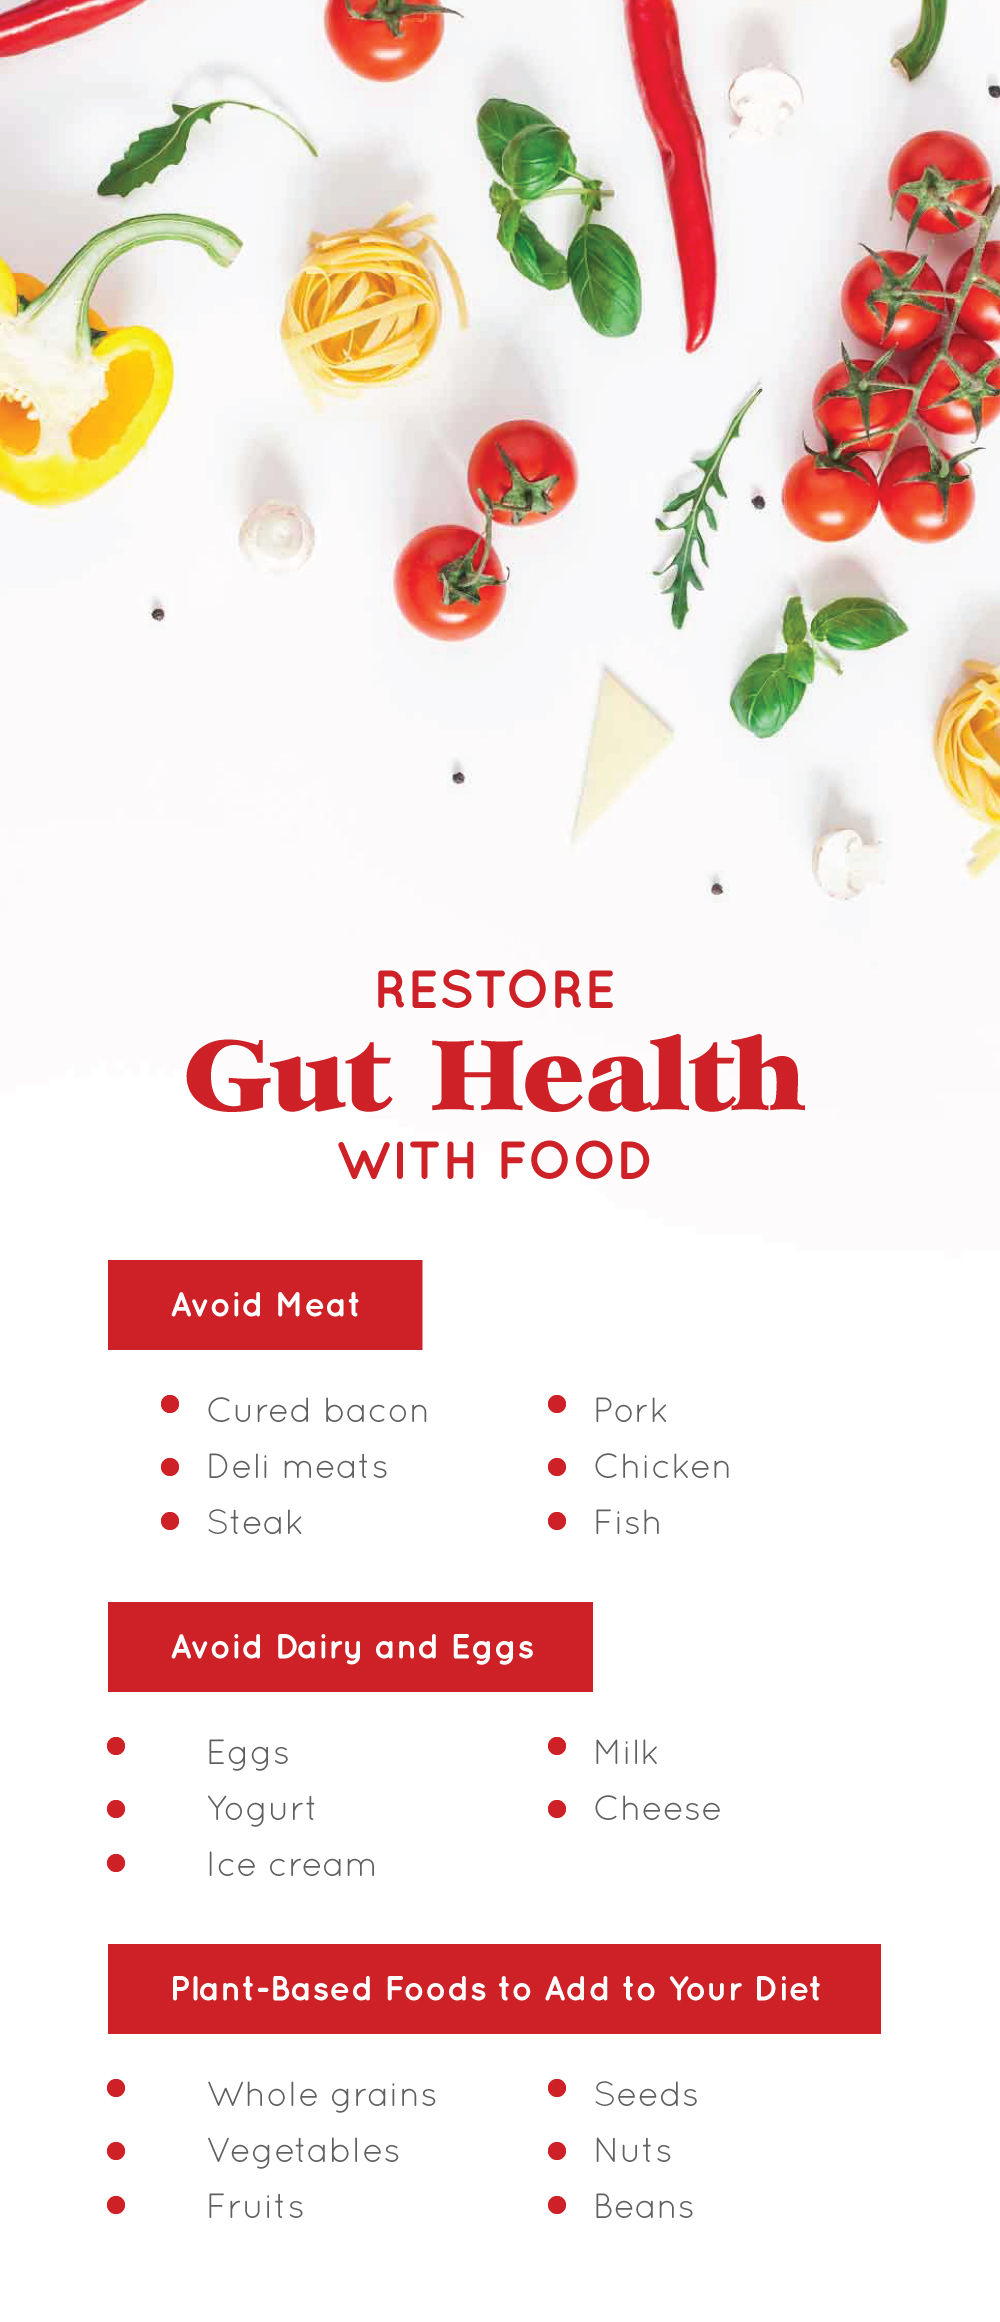 Restore Gut Health with Food